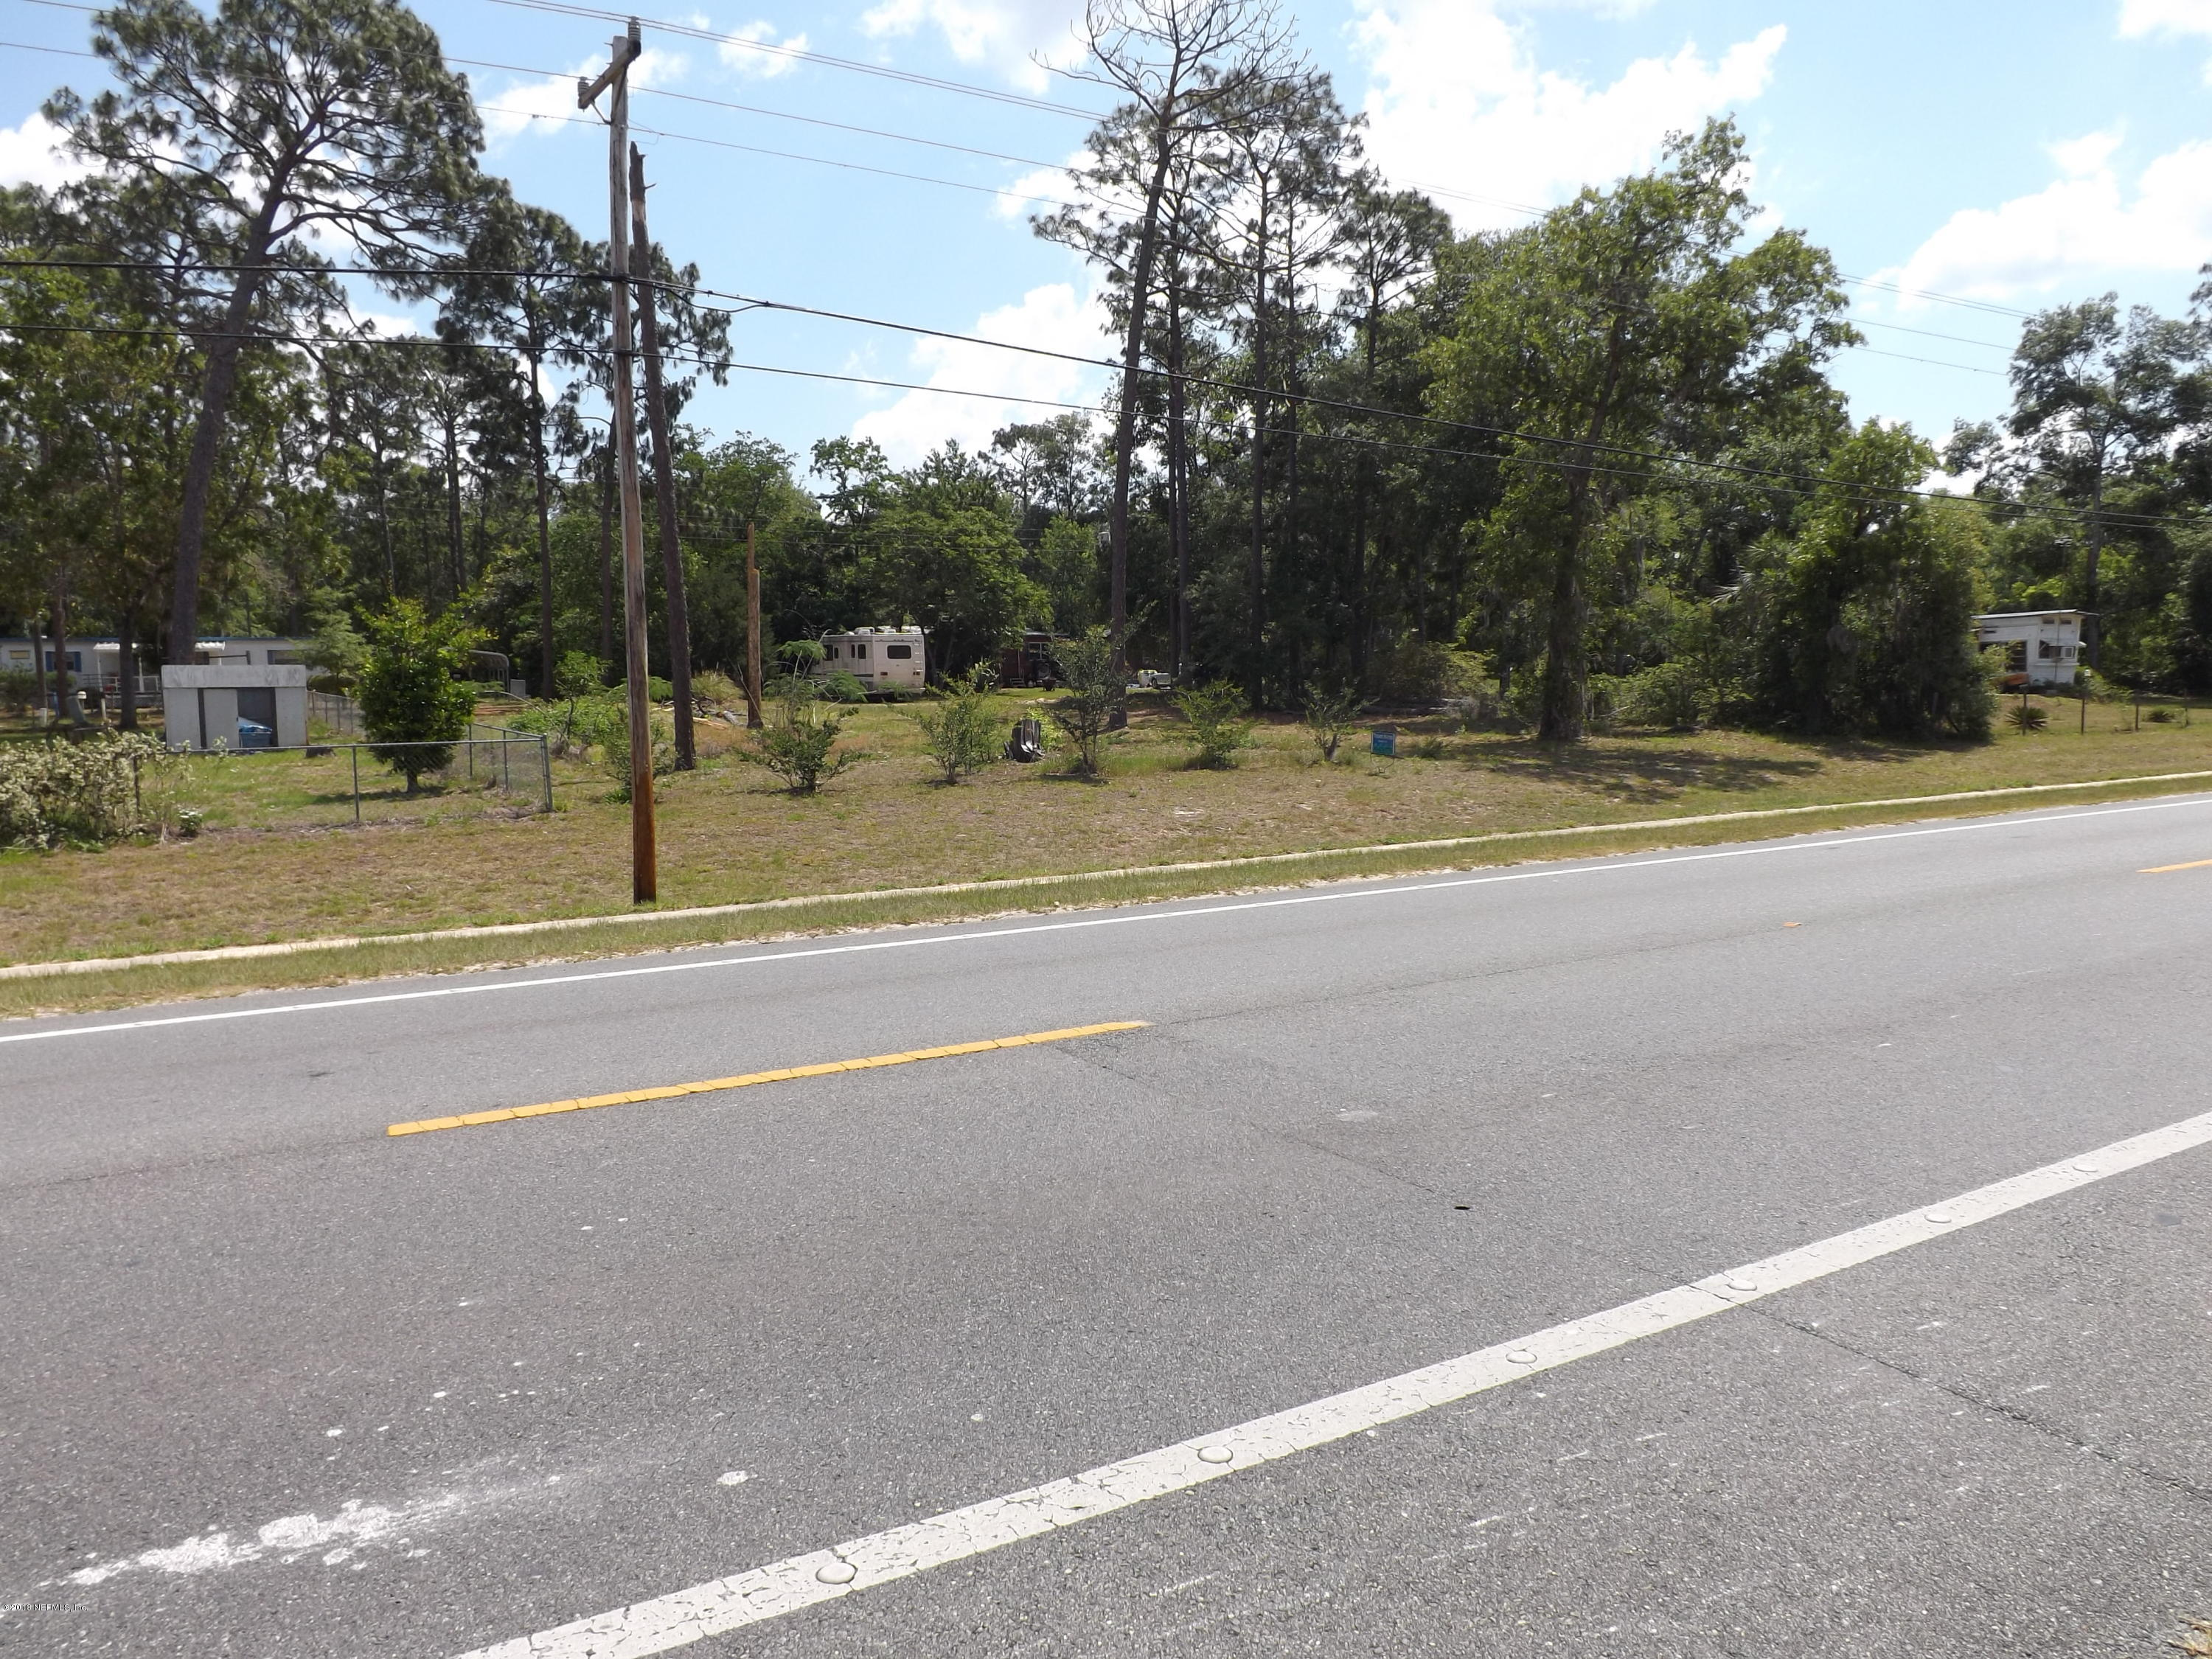 0 STATE RD 100, KEYSTONE HEIGHTS, FLORIDA 32656, ,Vacant land,For sale,STATE RD 100,935739